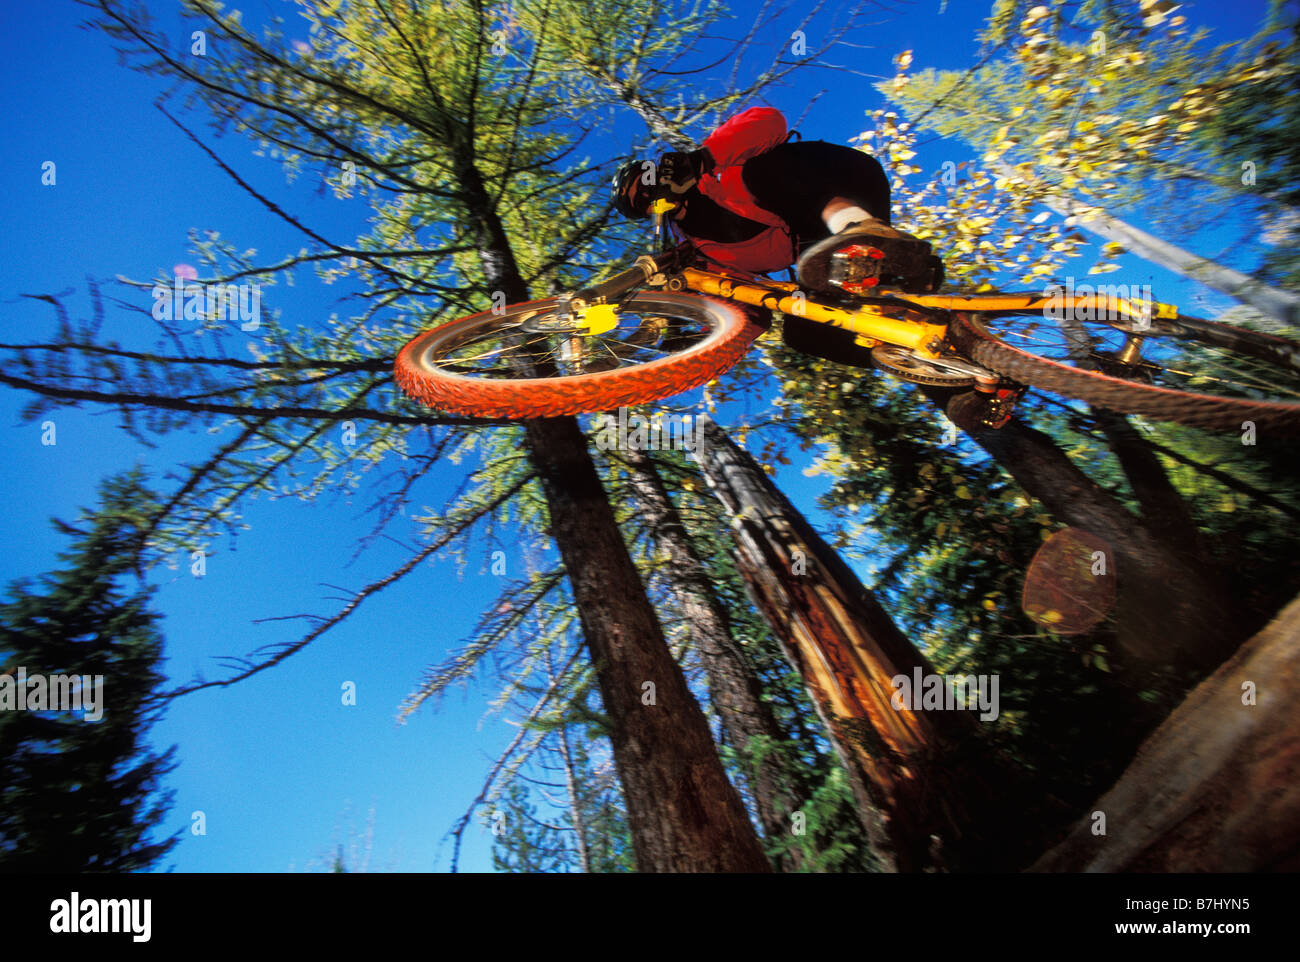 young man catches air on mountain bike near Fernie, BC, Canada - Stock Image